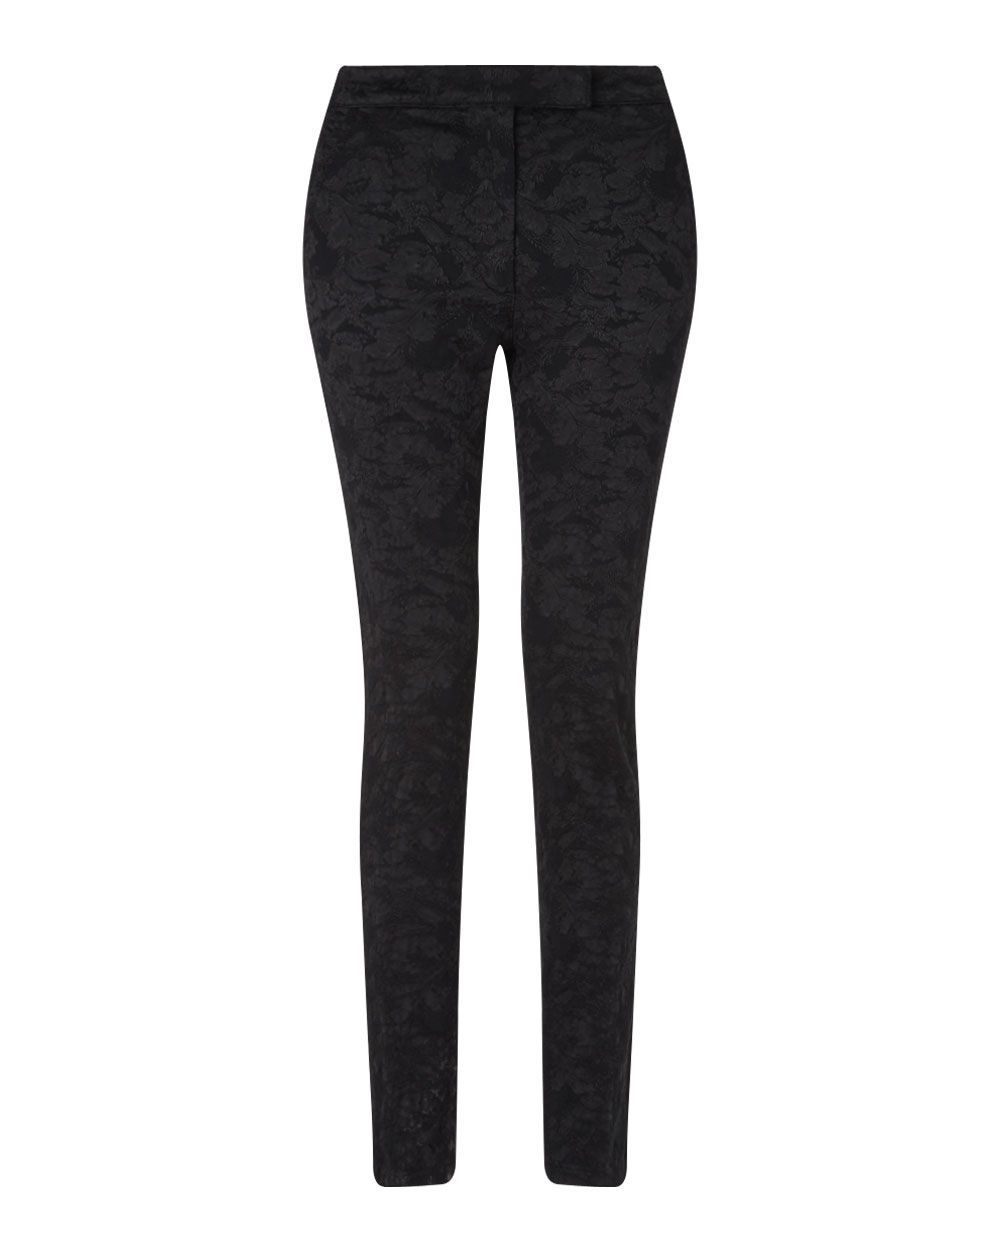 Jacquard Trouser, Black - length: standard; pattern: plain; waist: mid/regular rise; predominant colour: black; occasions: casual, creative work; fibres: cotton - mix; fit: skinny/tight leg; pattern type: fabric; texture group: brocade/jacquard; style: standard; season: a/w 2015; wardrobe: basic